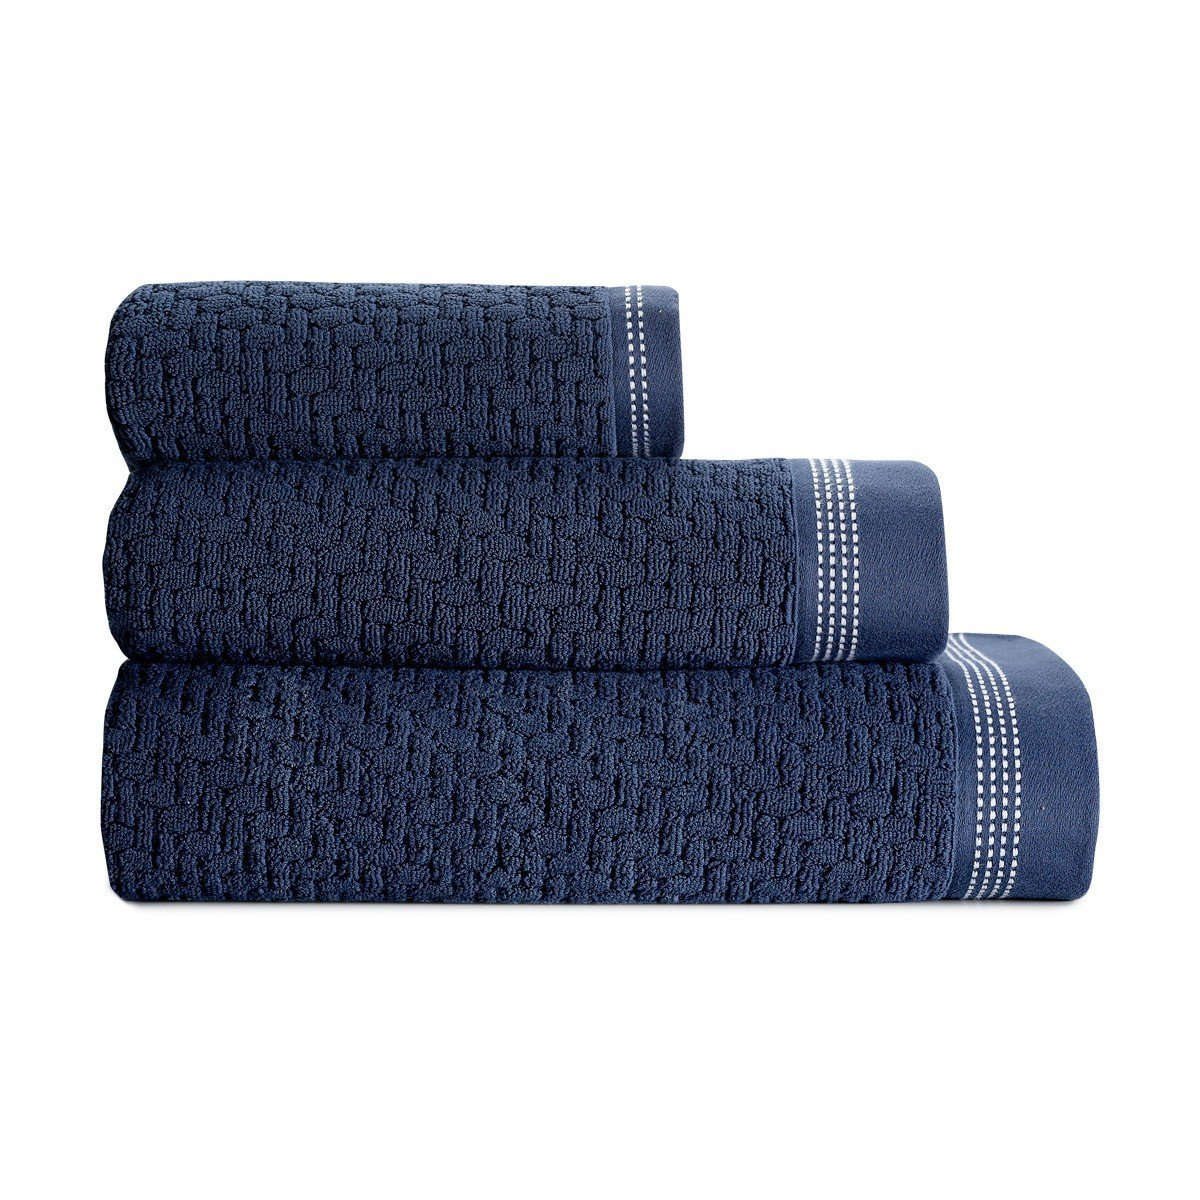 Le Jacquard Français | Couture Ocean Bath Collection | Fig Linens - Navy Blue Towels